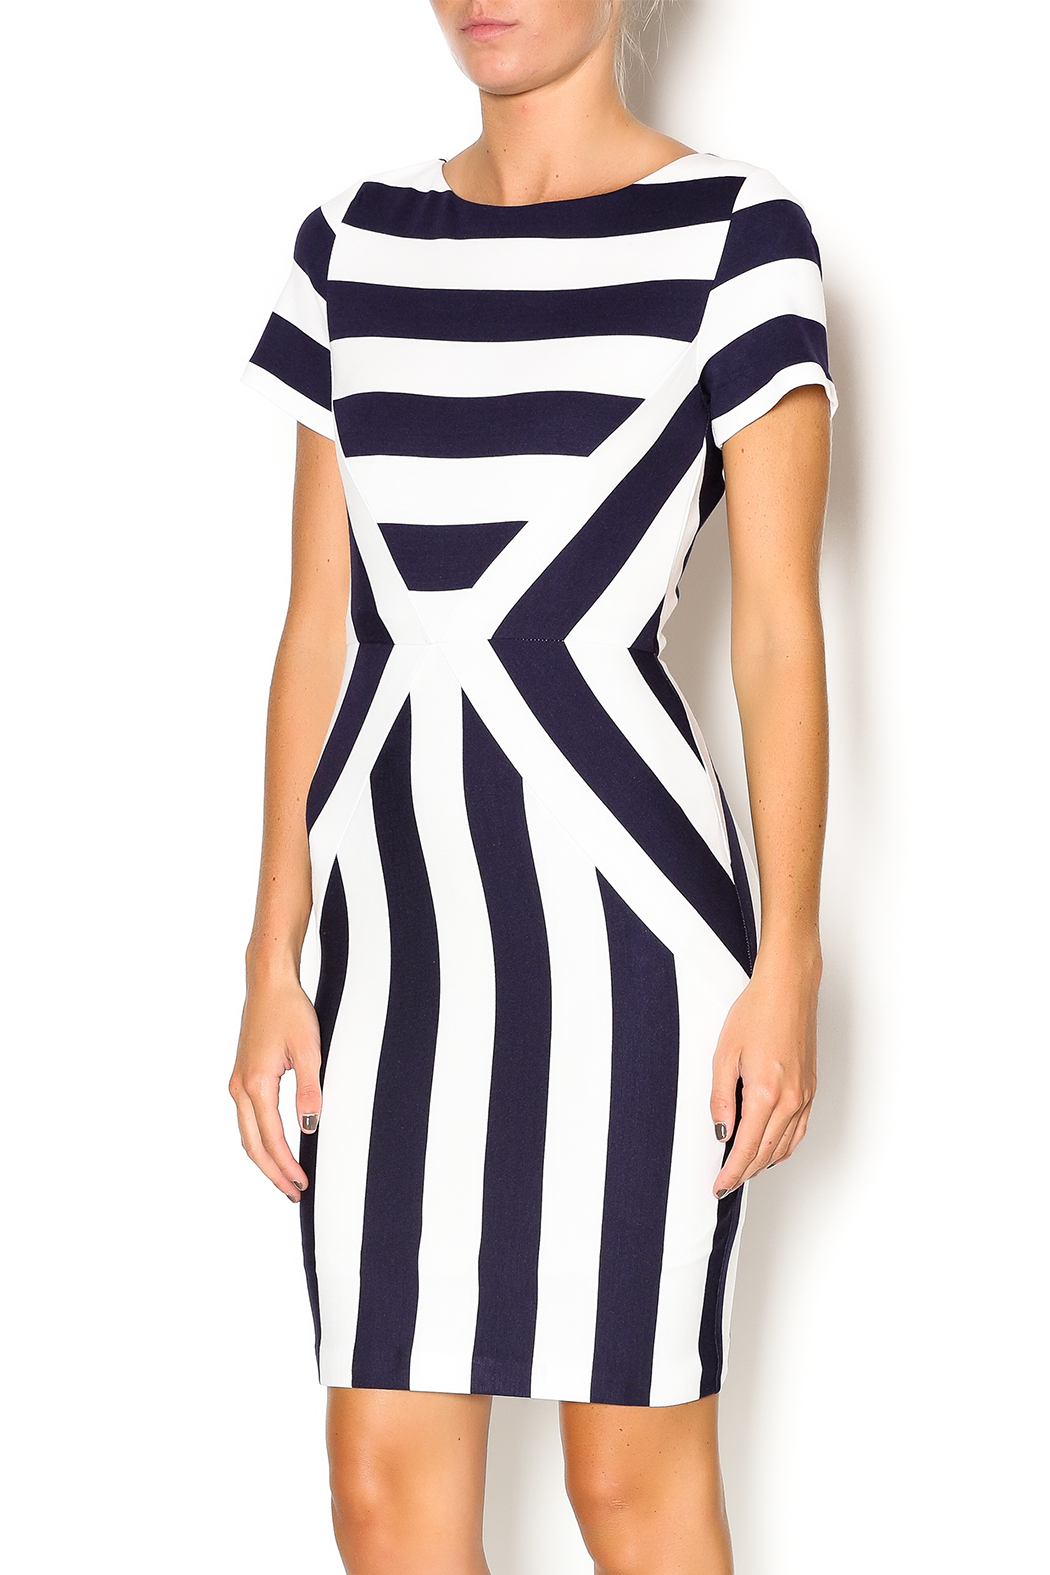 Esley Striped Dress From Cleveland By High Pockets Shoptiques